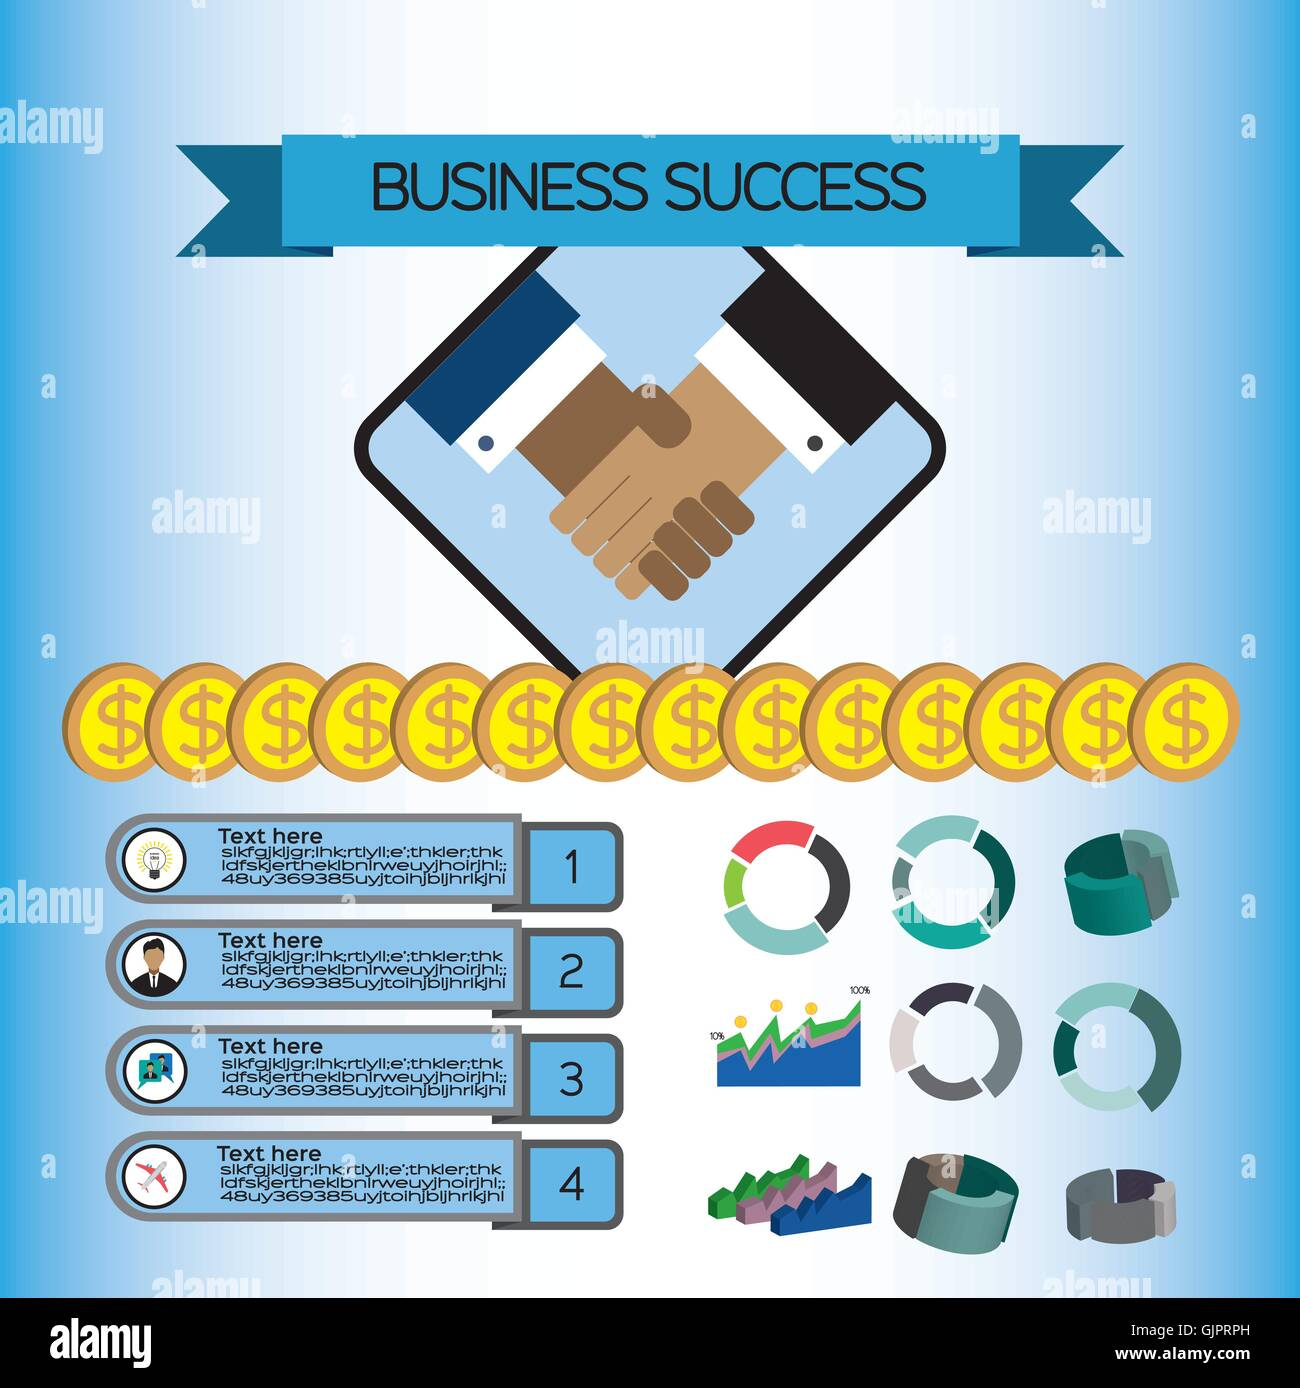 Business success infographic with icons shaking hands money and business success infographic with icons shaking hands money and charts flat design digital vector image ccuart Choice Image